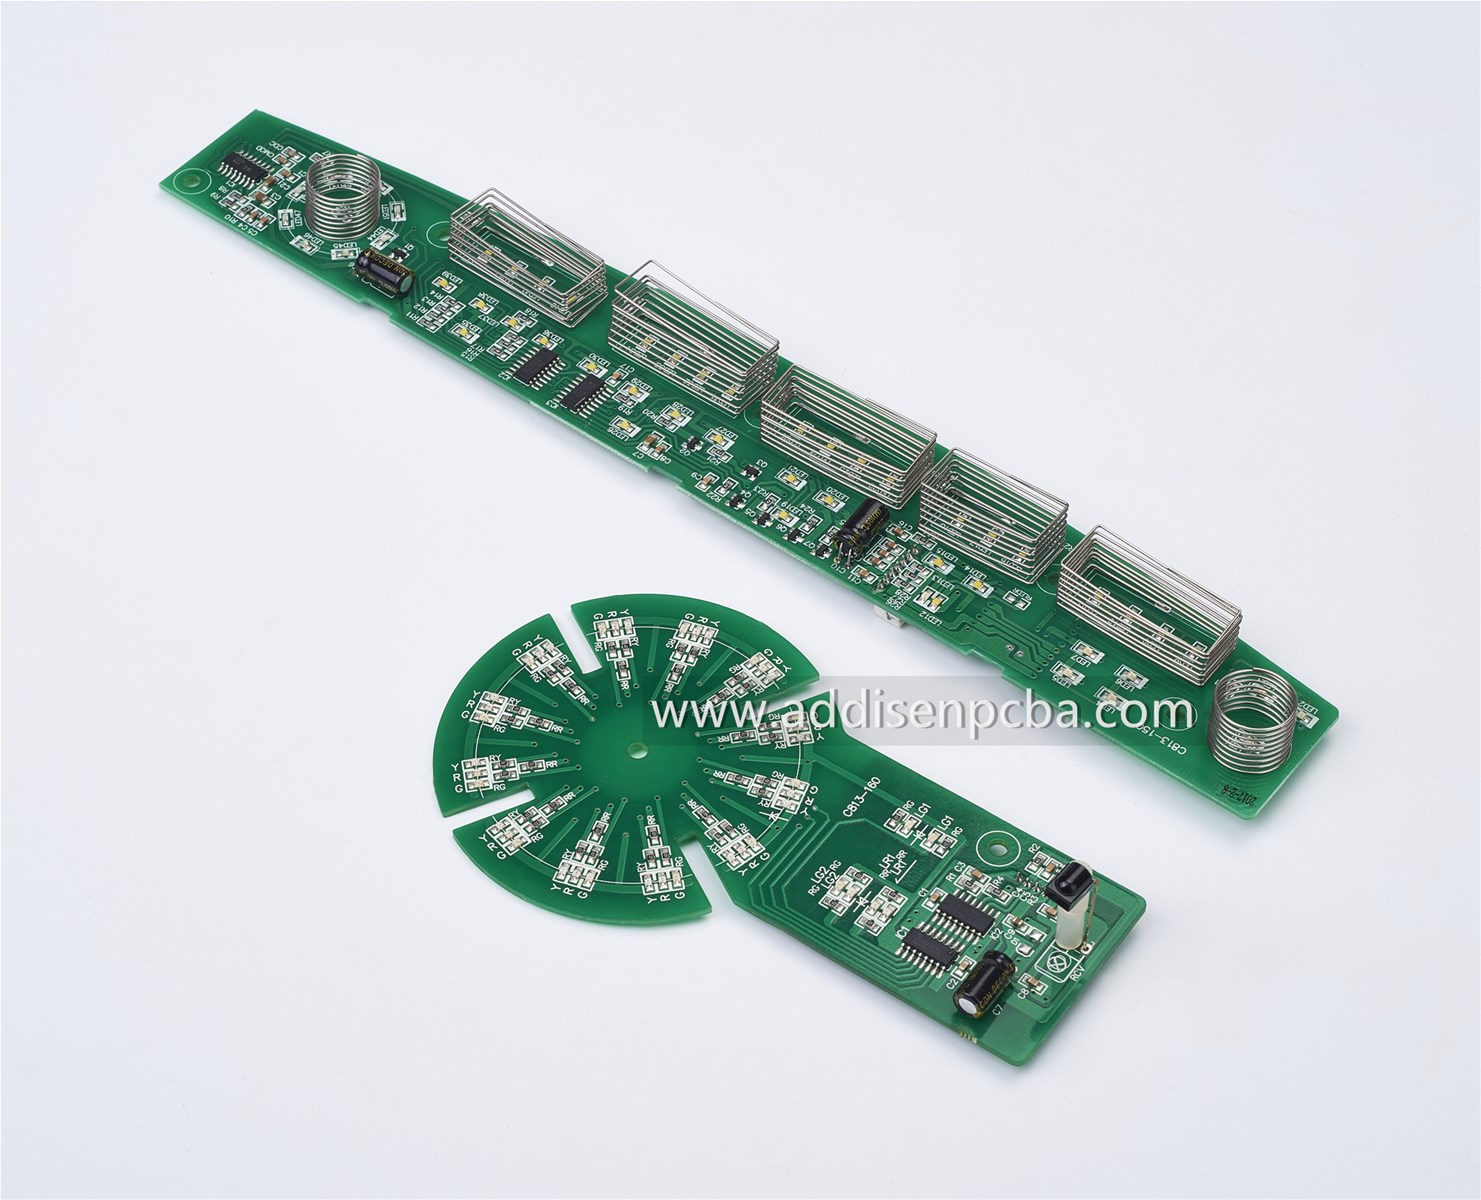 Circuit board controller for fresh air purifier